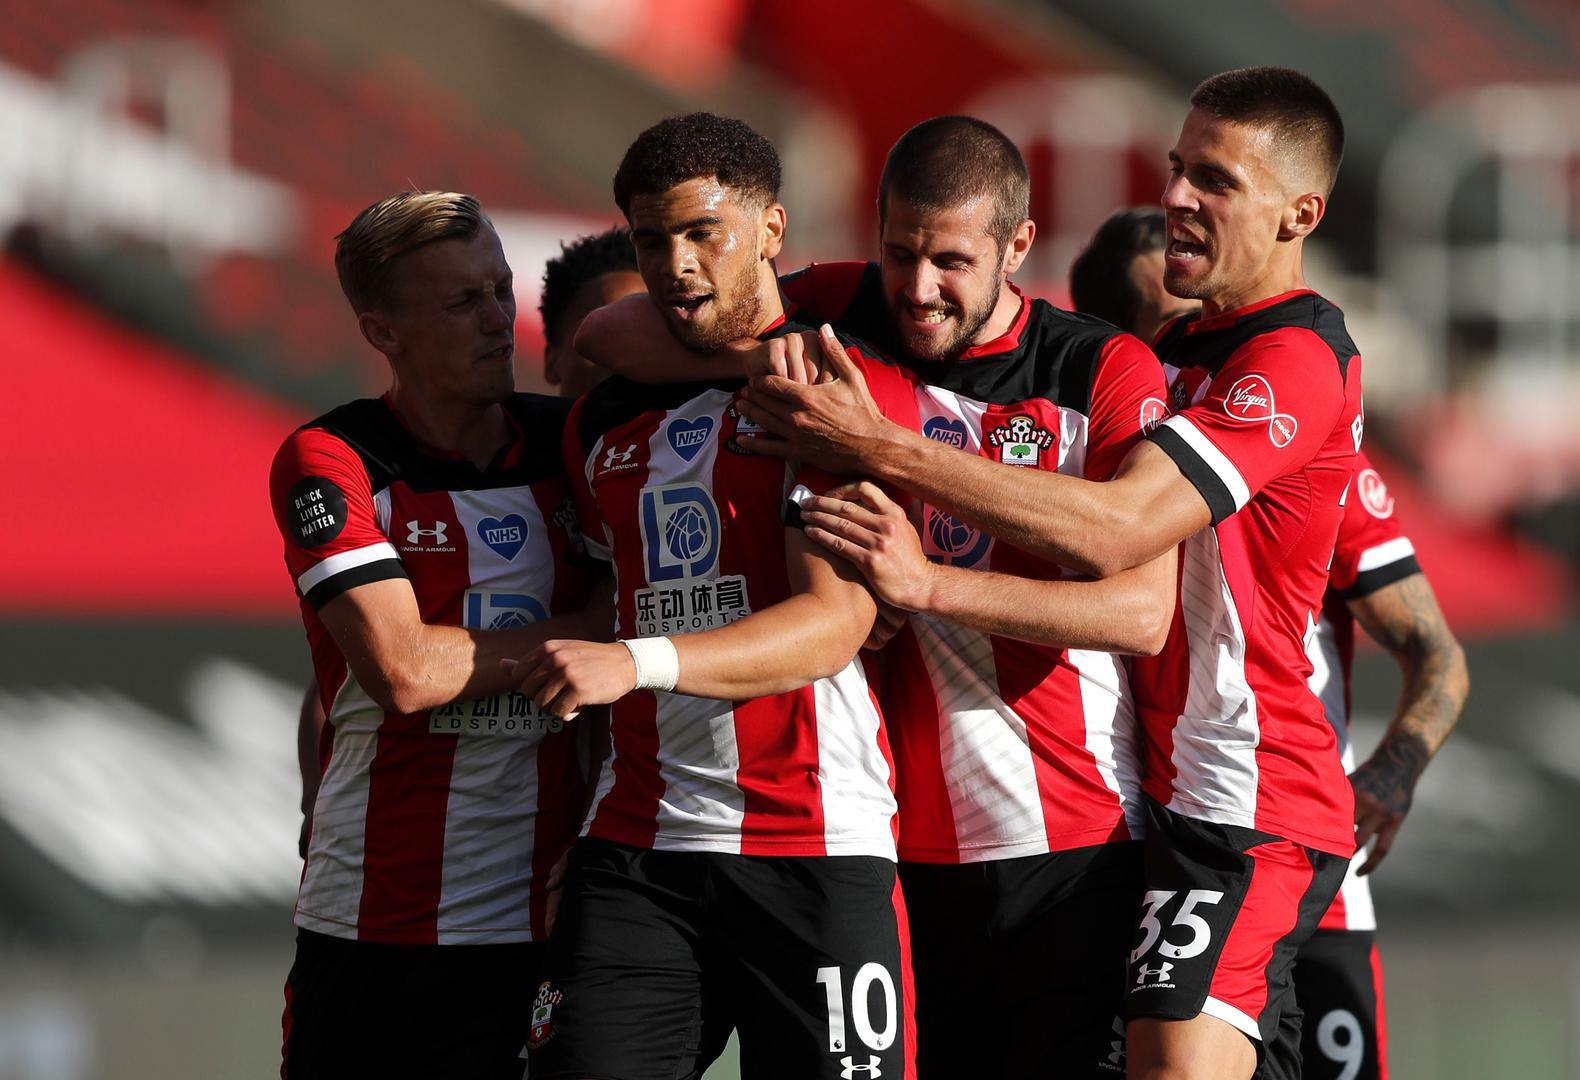 Southampton celebrate a goal against Manchester City